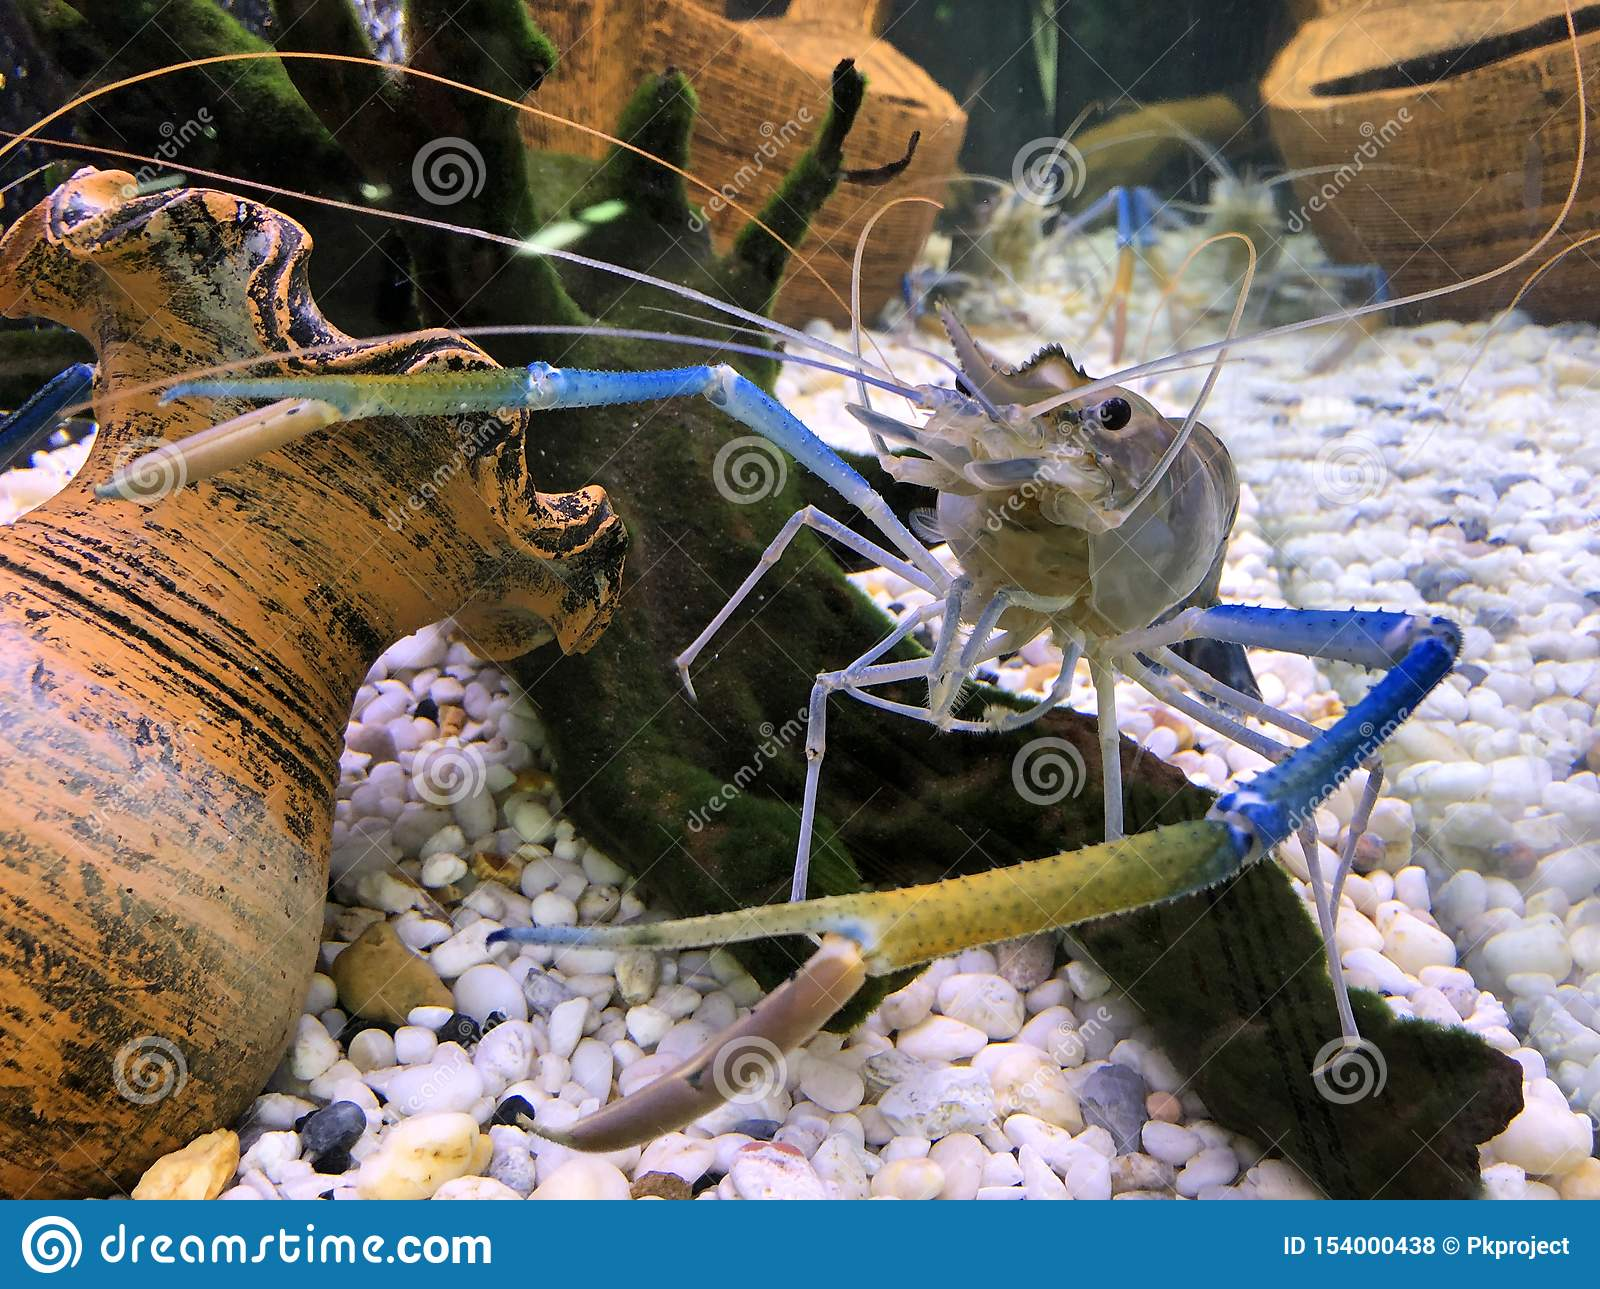 Giant Freshwater Prawn Or Giant River Shrimp In Tank Stock